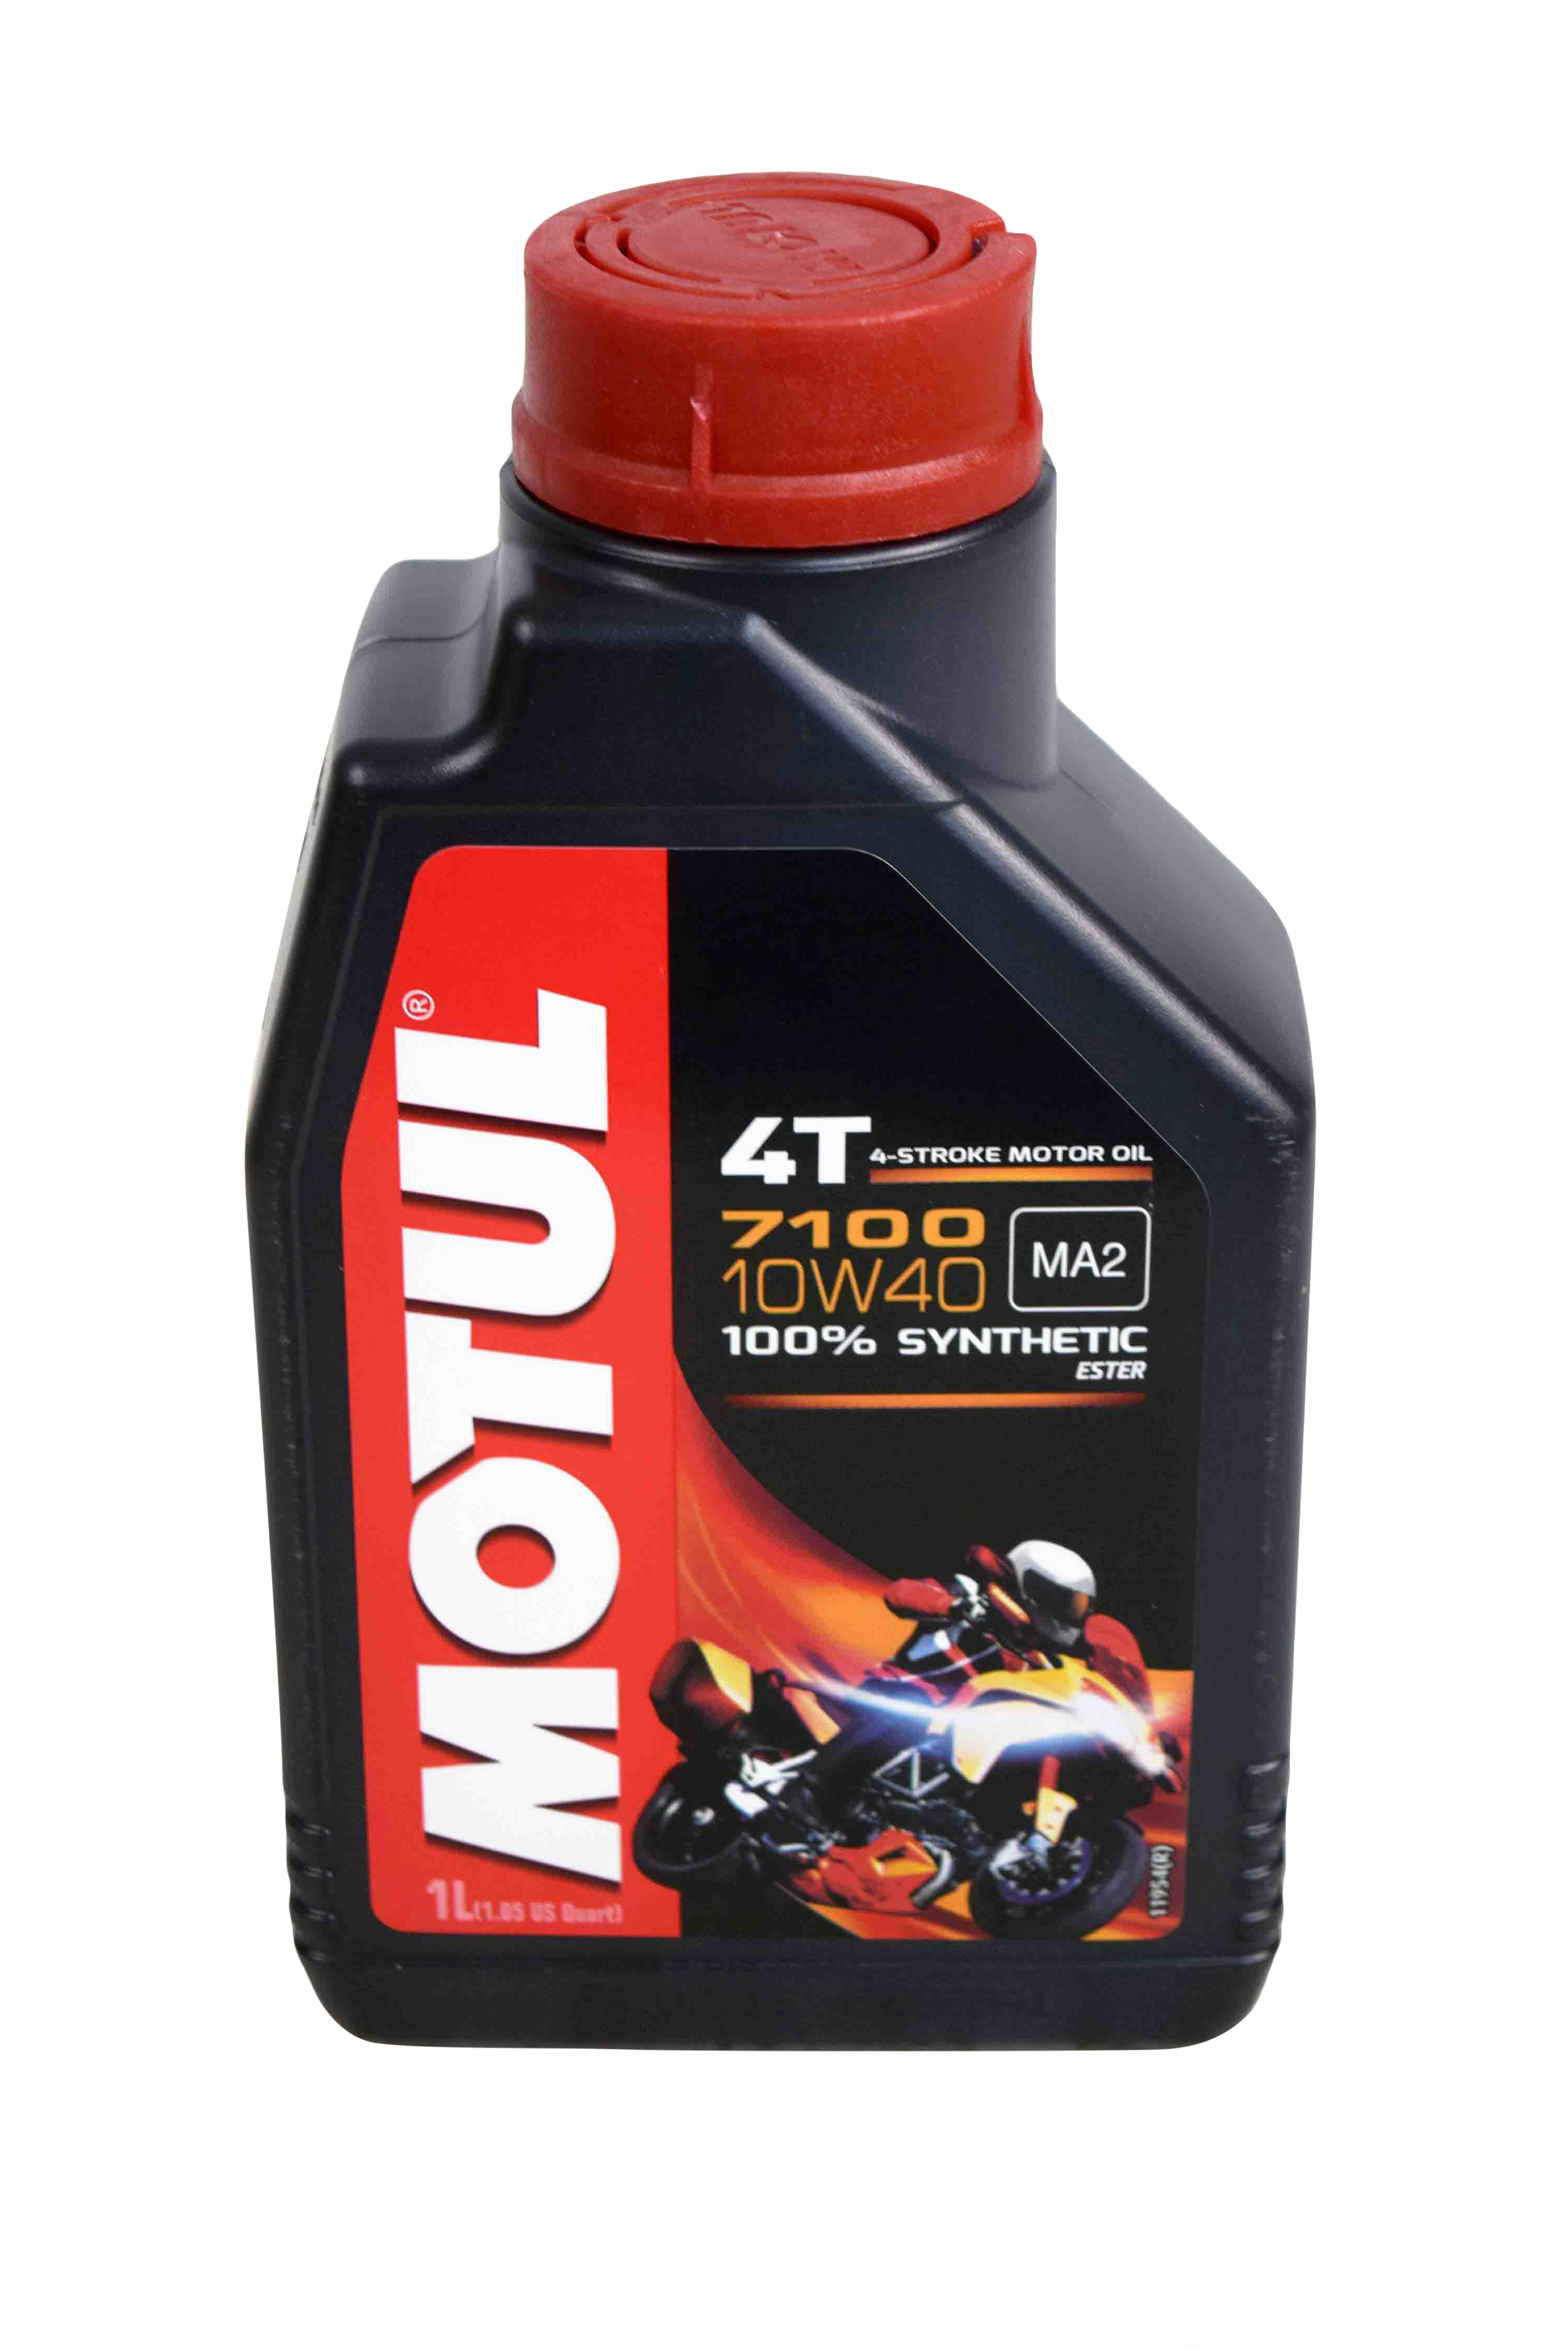 Motul-104091-7100-Ester-4T-Fully-Synthetic-10W-40-Petrol-Engine-Oil-for-Bikes-1-L-image-1